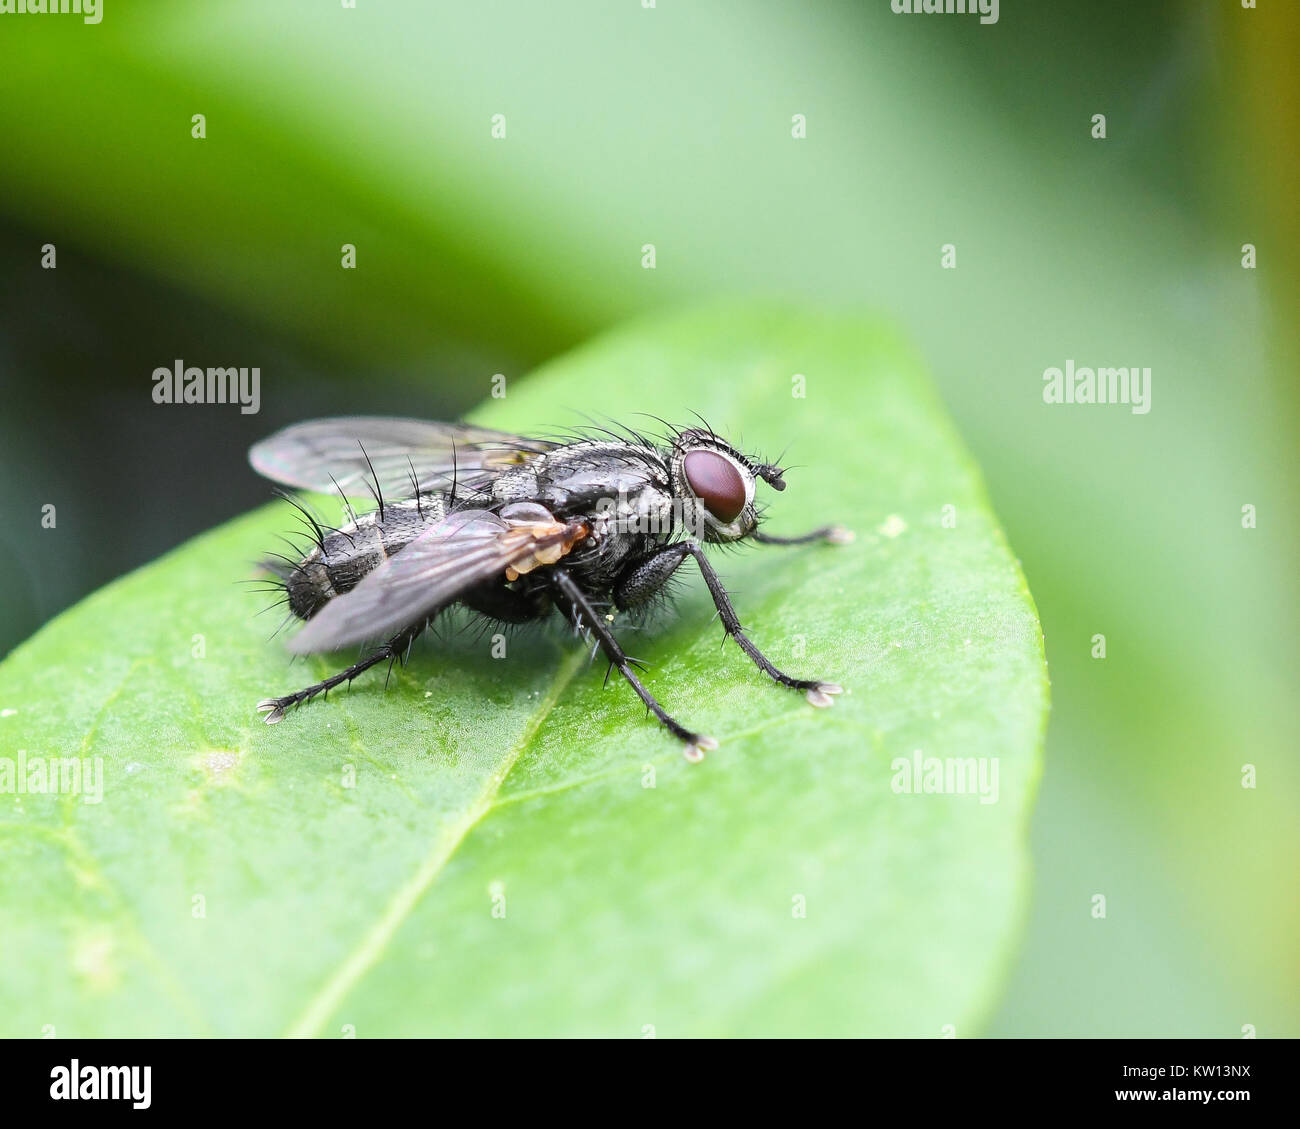 Tachinid parasitic fly perched on a leaf Stock Photo